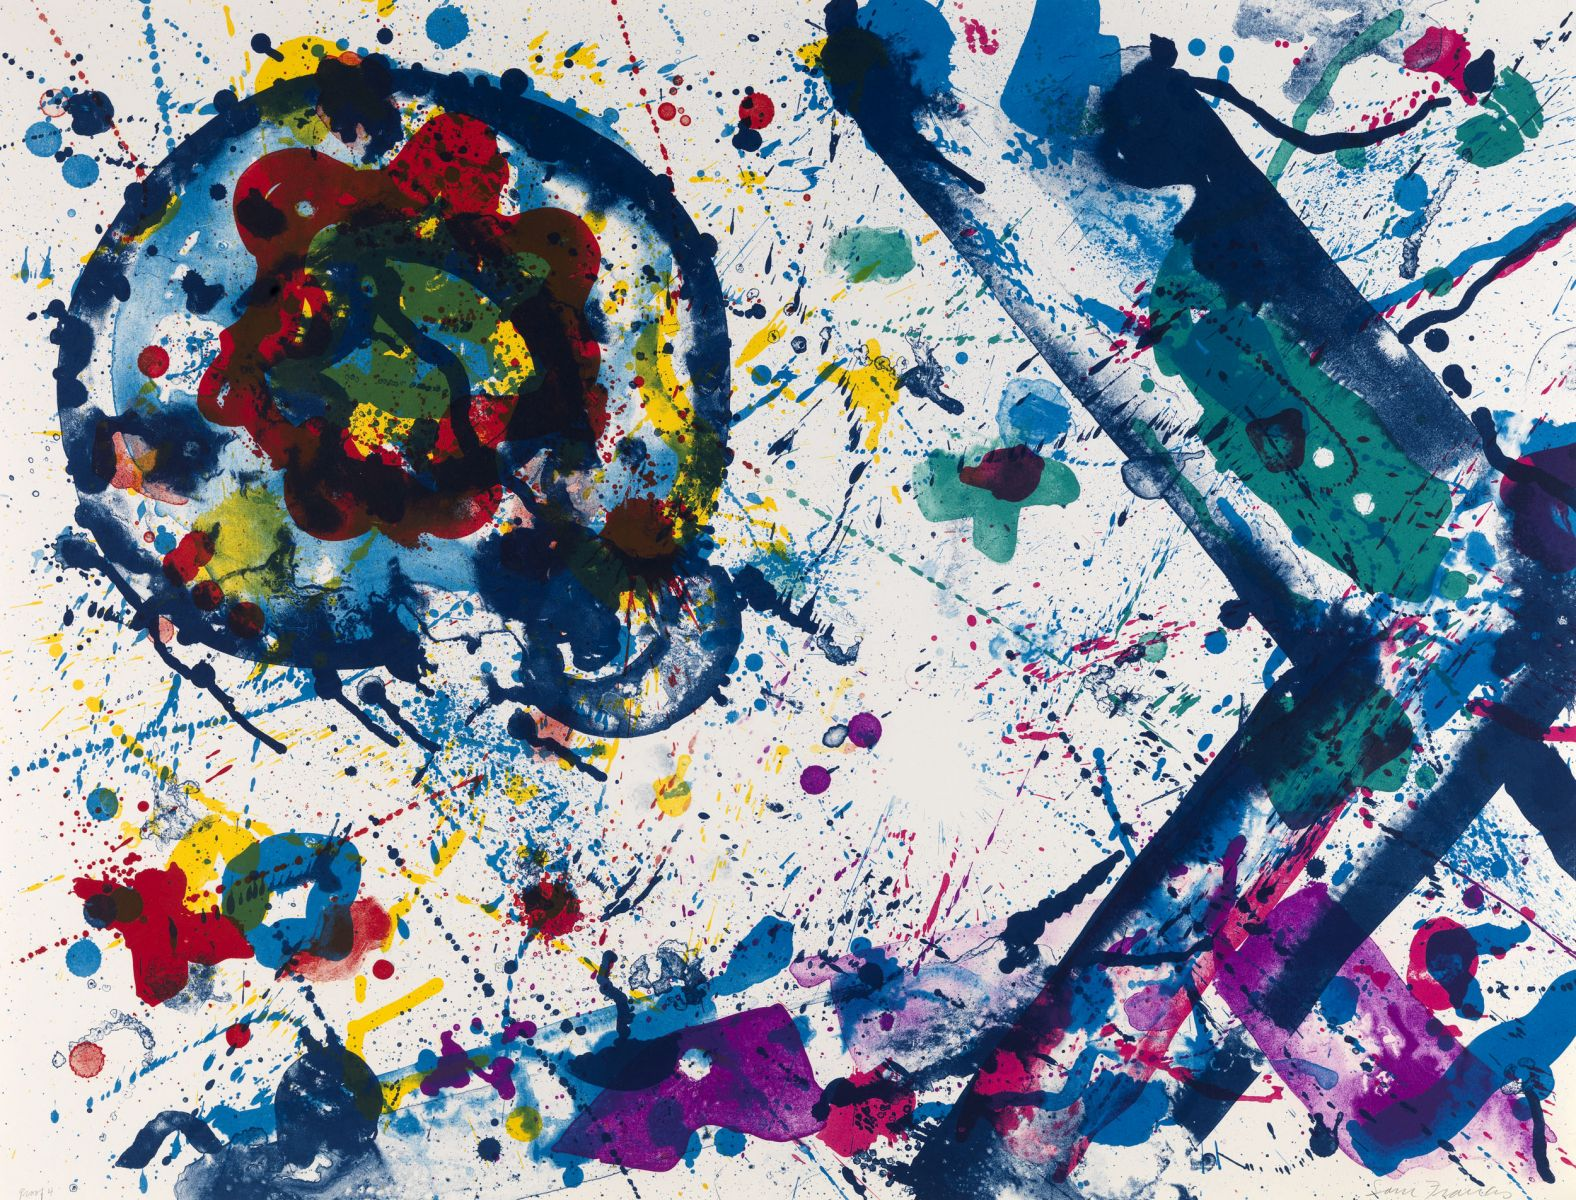 Sam Francis,  Untitled , 1986, Lithograph, Edition of 50, 67.3 x 88.9 cms (26 1/2 x 35 ins)